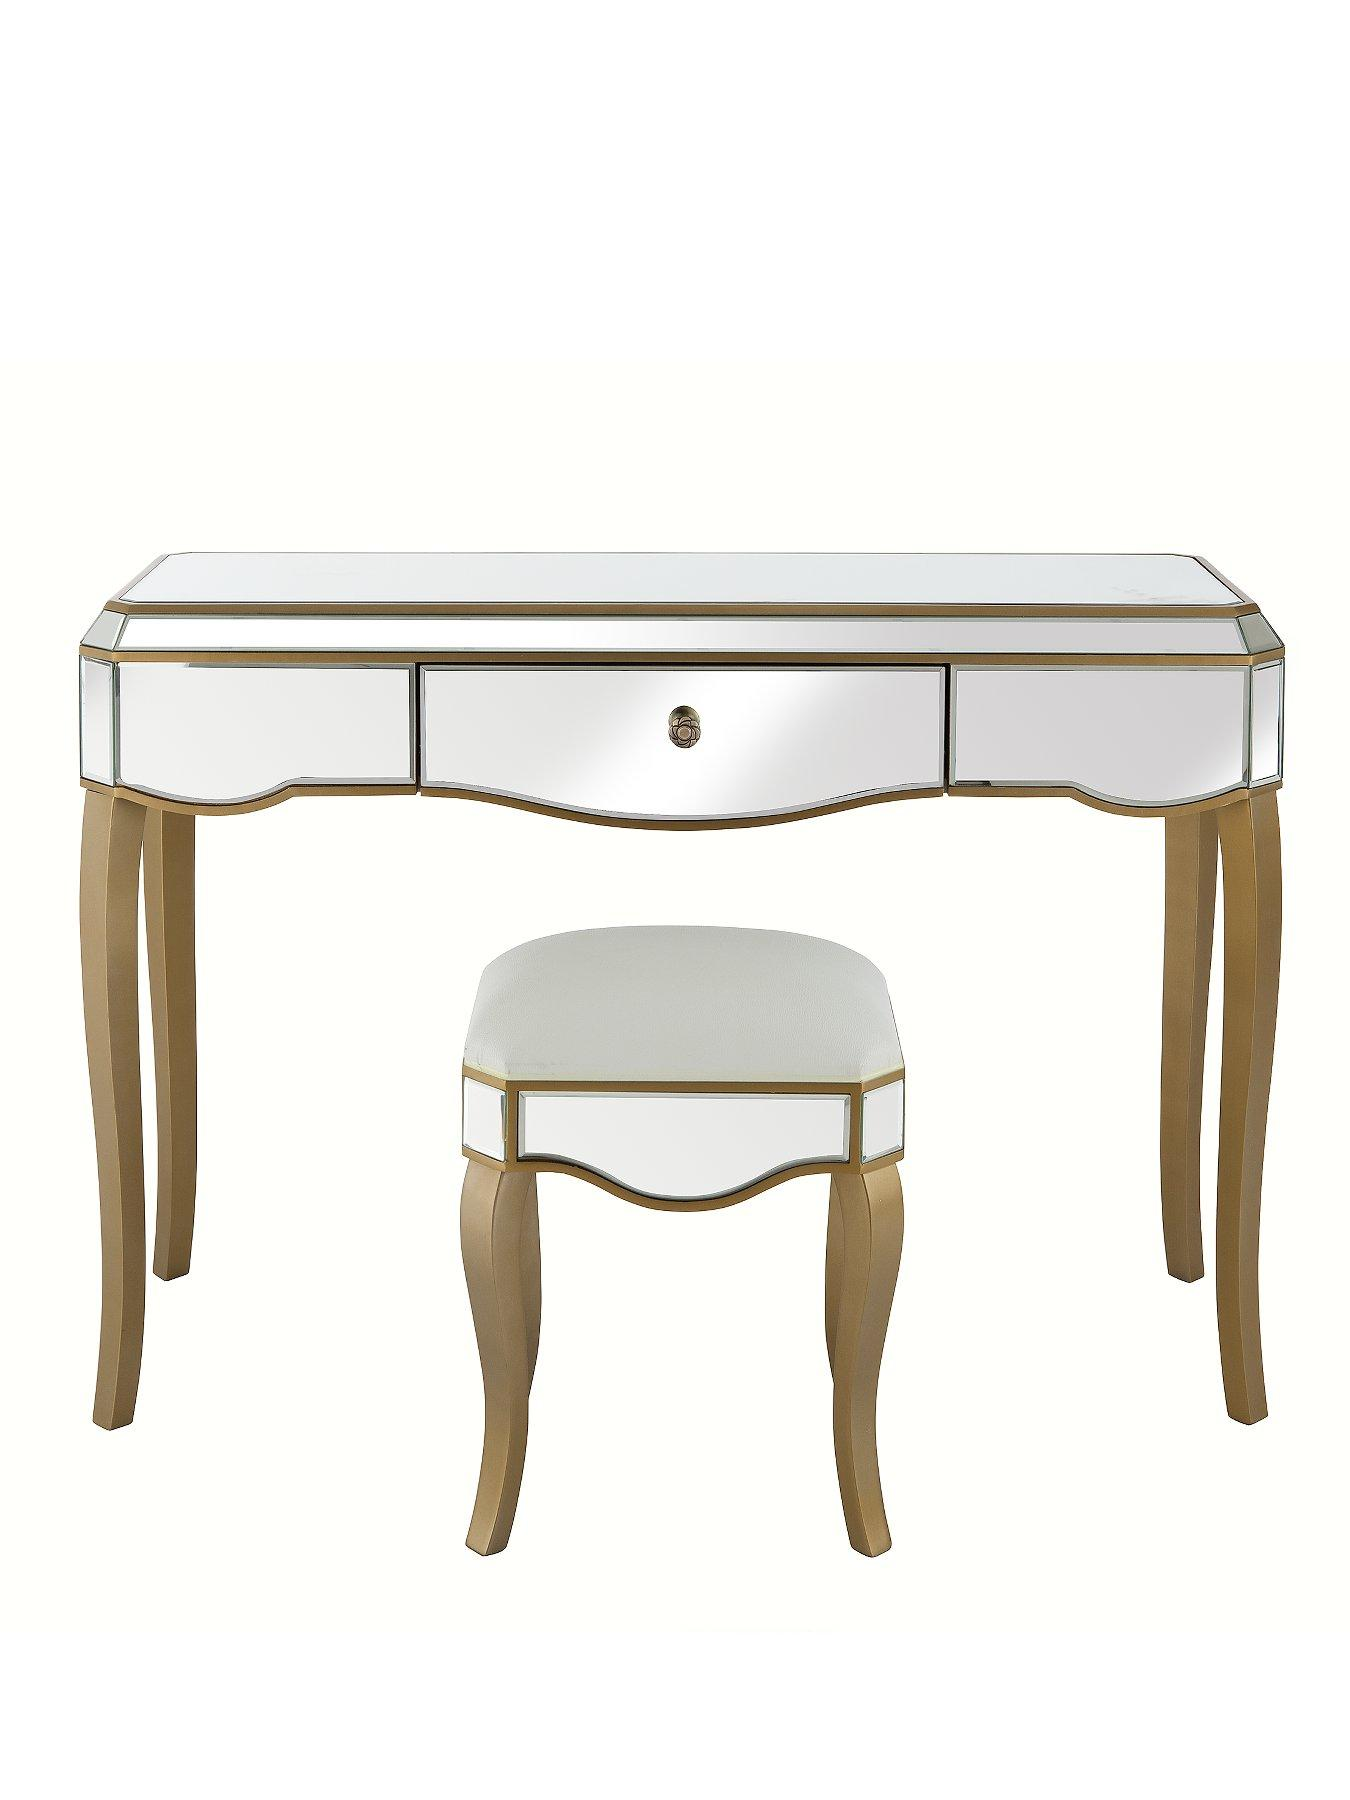 New Vintage Ready Assembled Mirrored Dressing Table and Stool Set